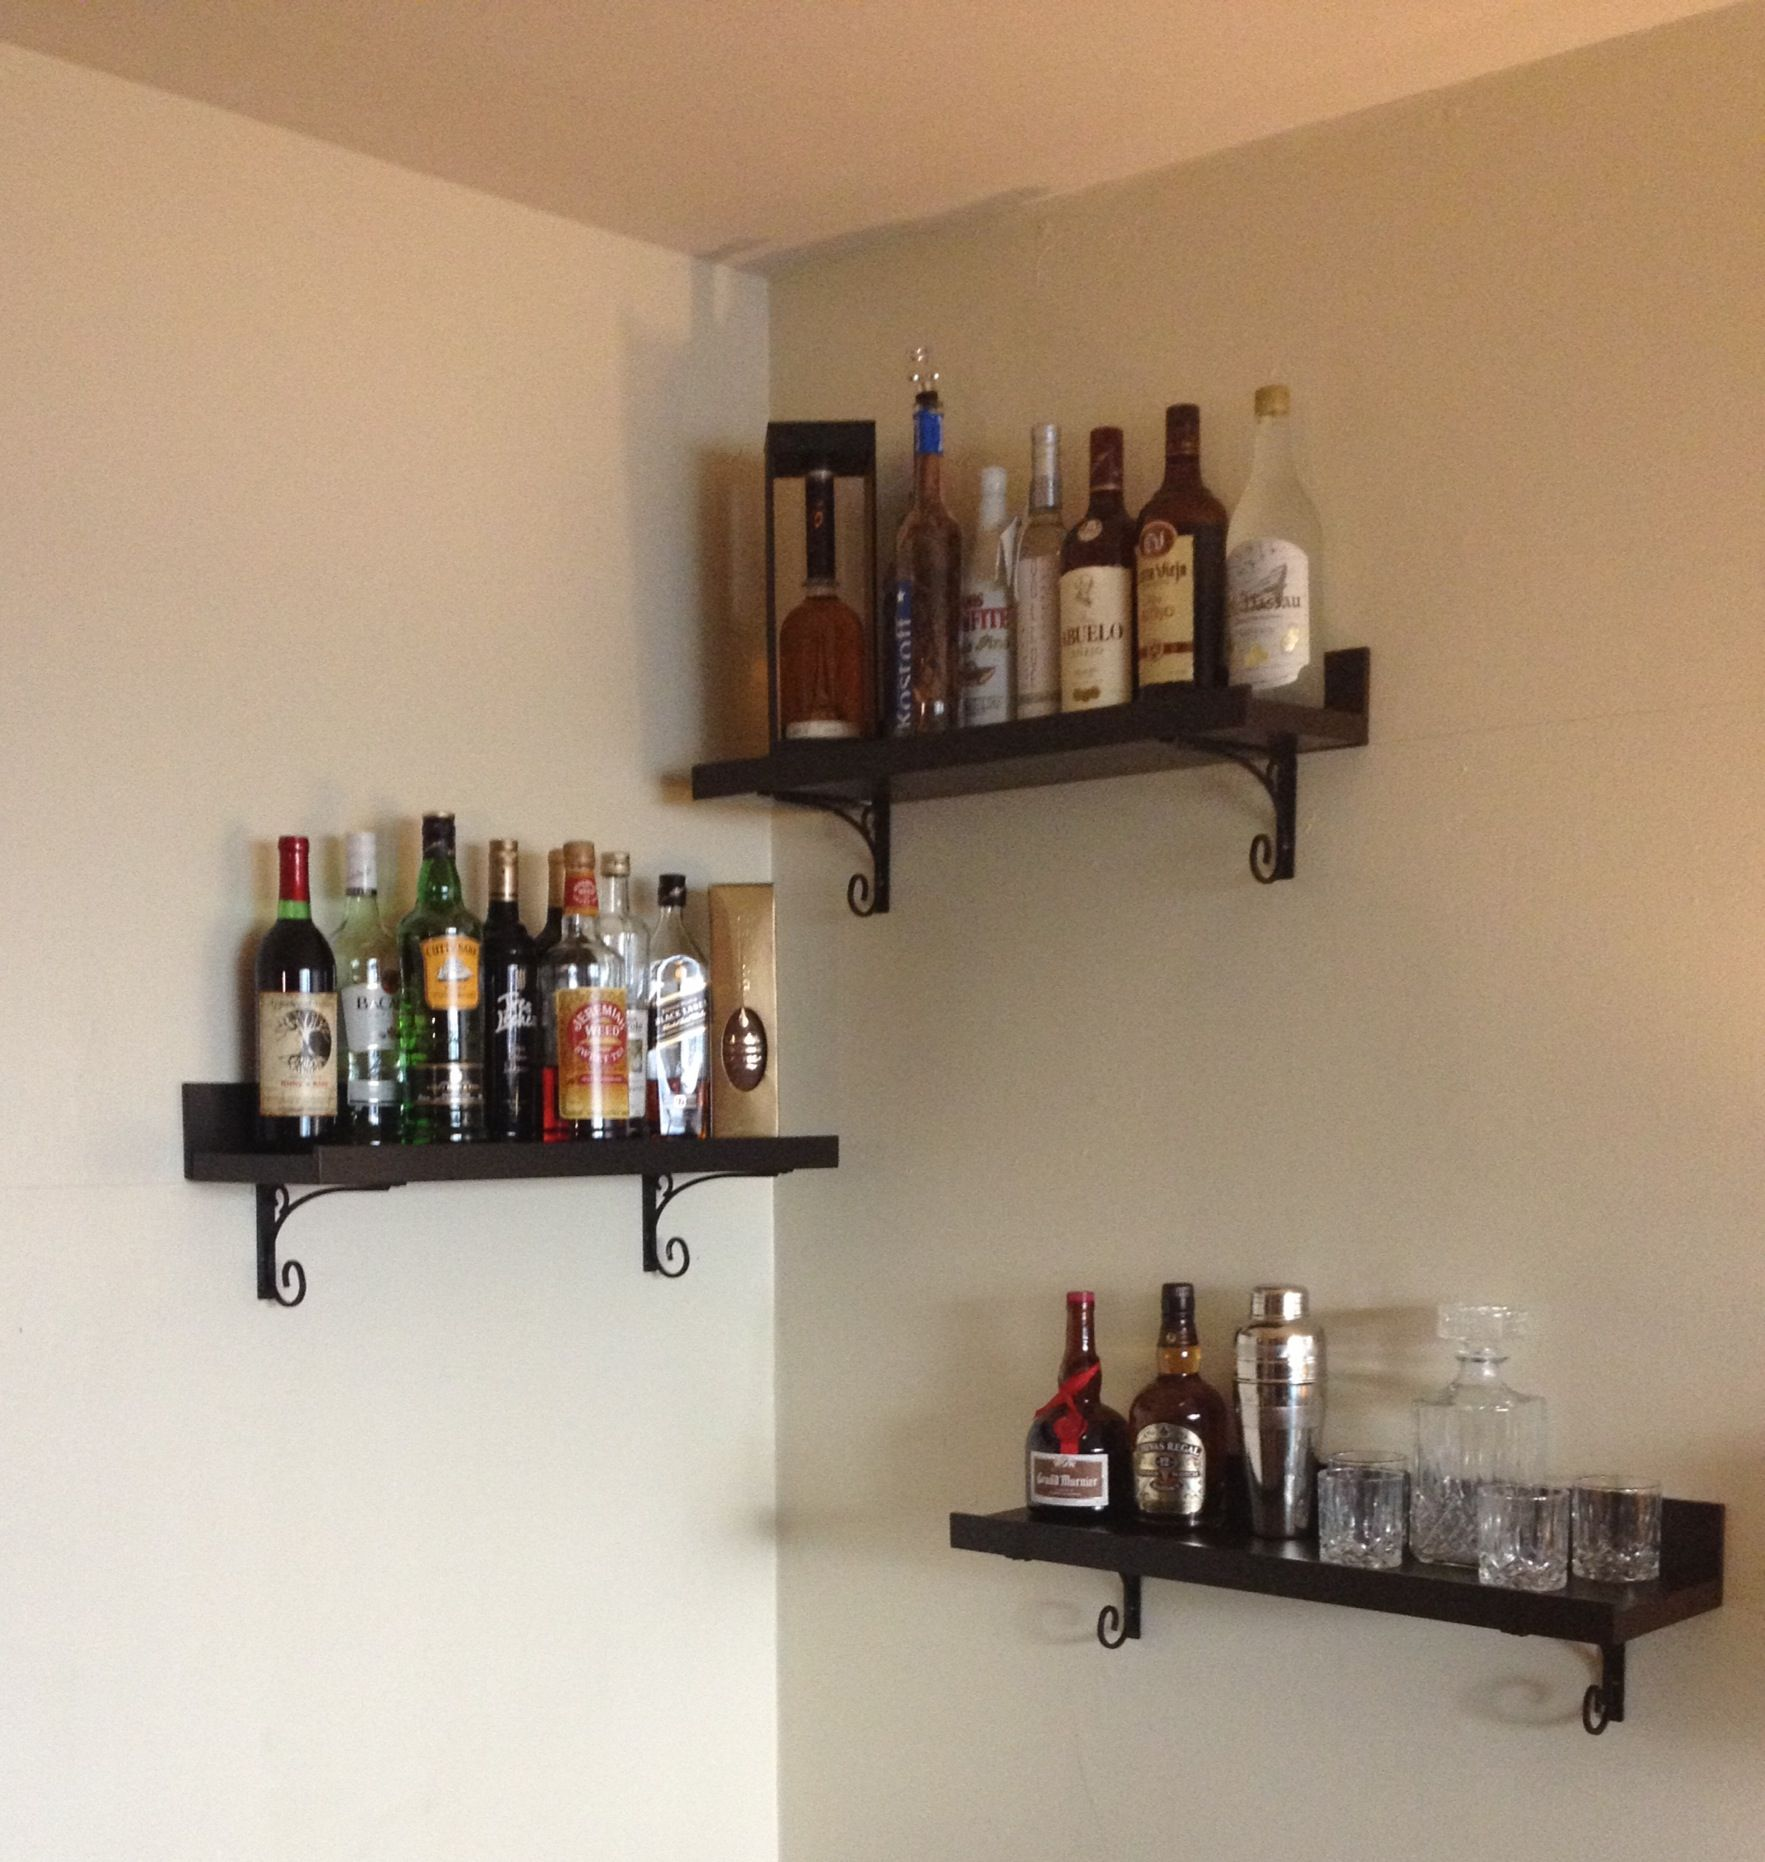 21 Amazing Shelf Rack Ideas For Your Home: DIY Corner Bar. Shelves And Brackets From Lowe's